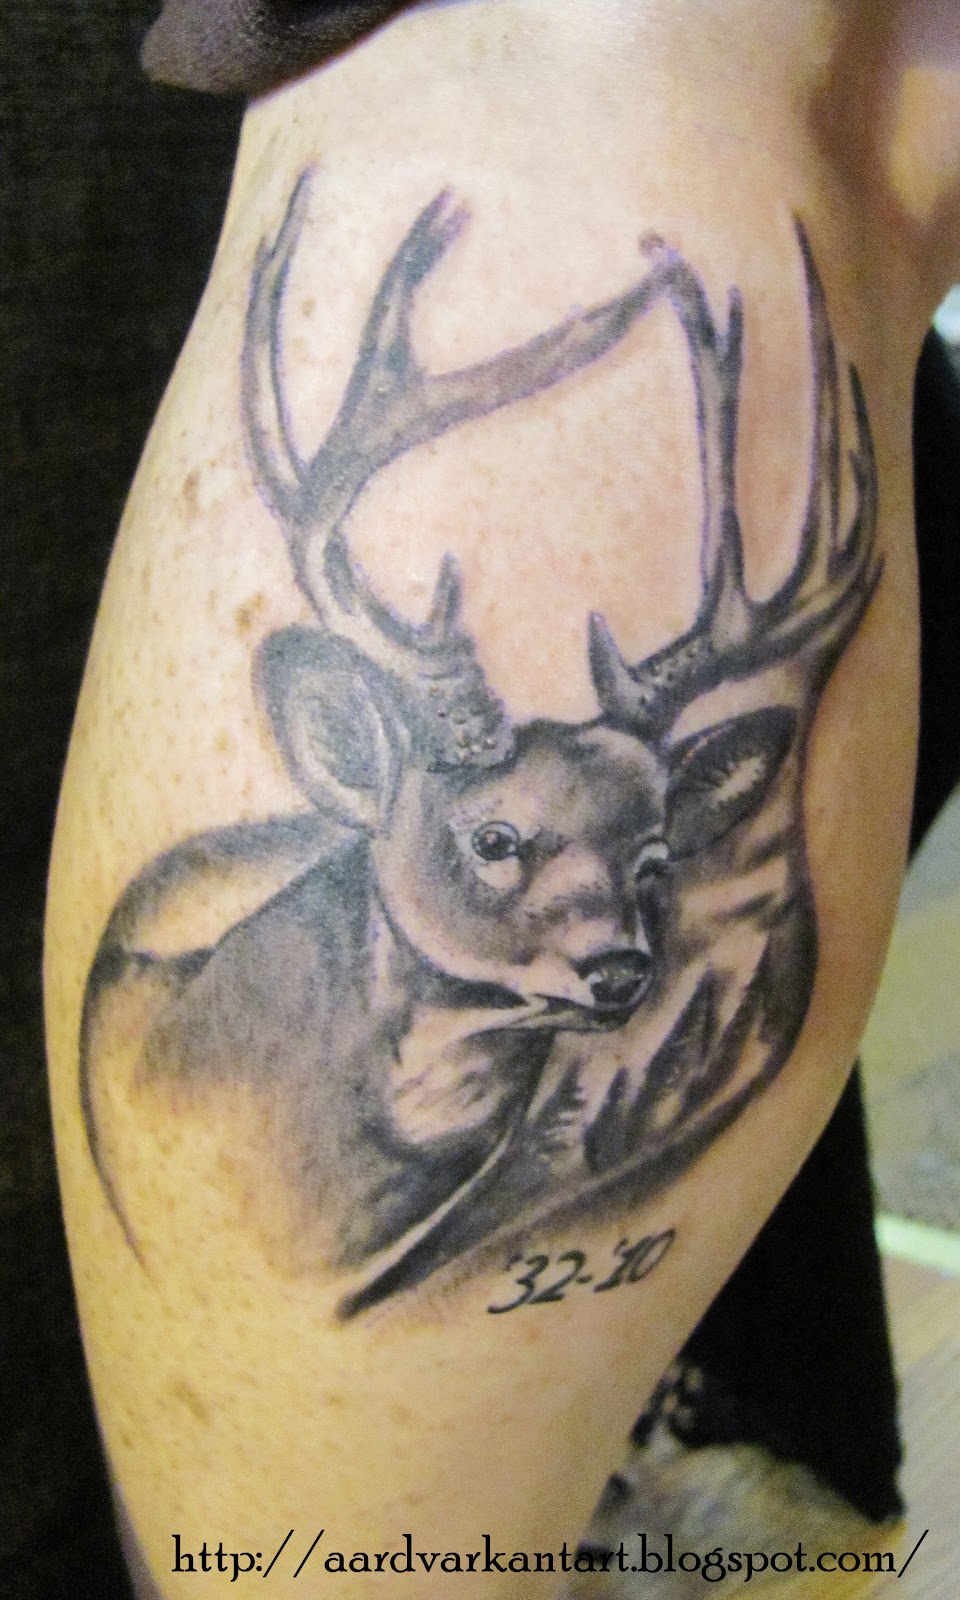 Deer Calf Tattoo Jackalope Tattoo Claddagh Tattoo Navy Diver Helmet